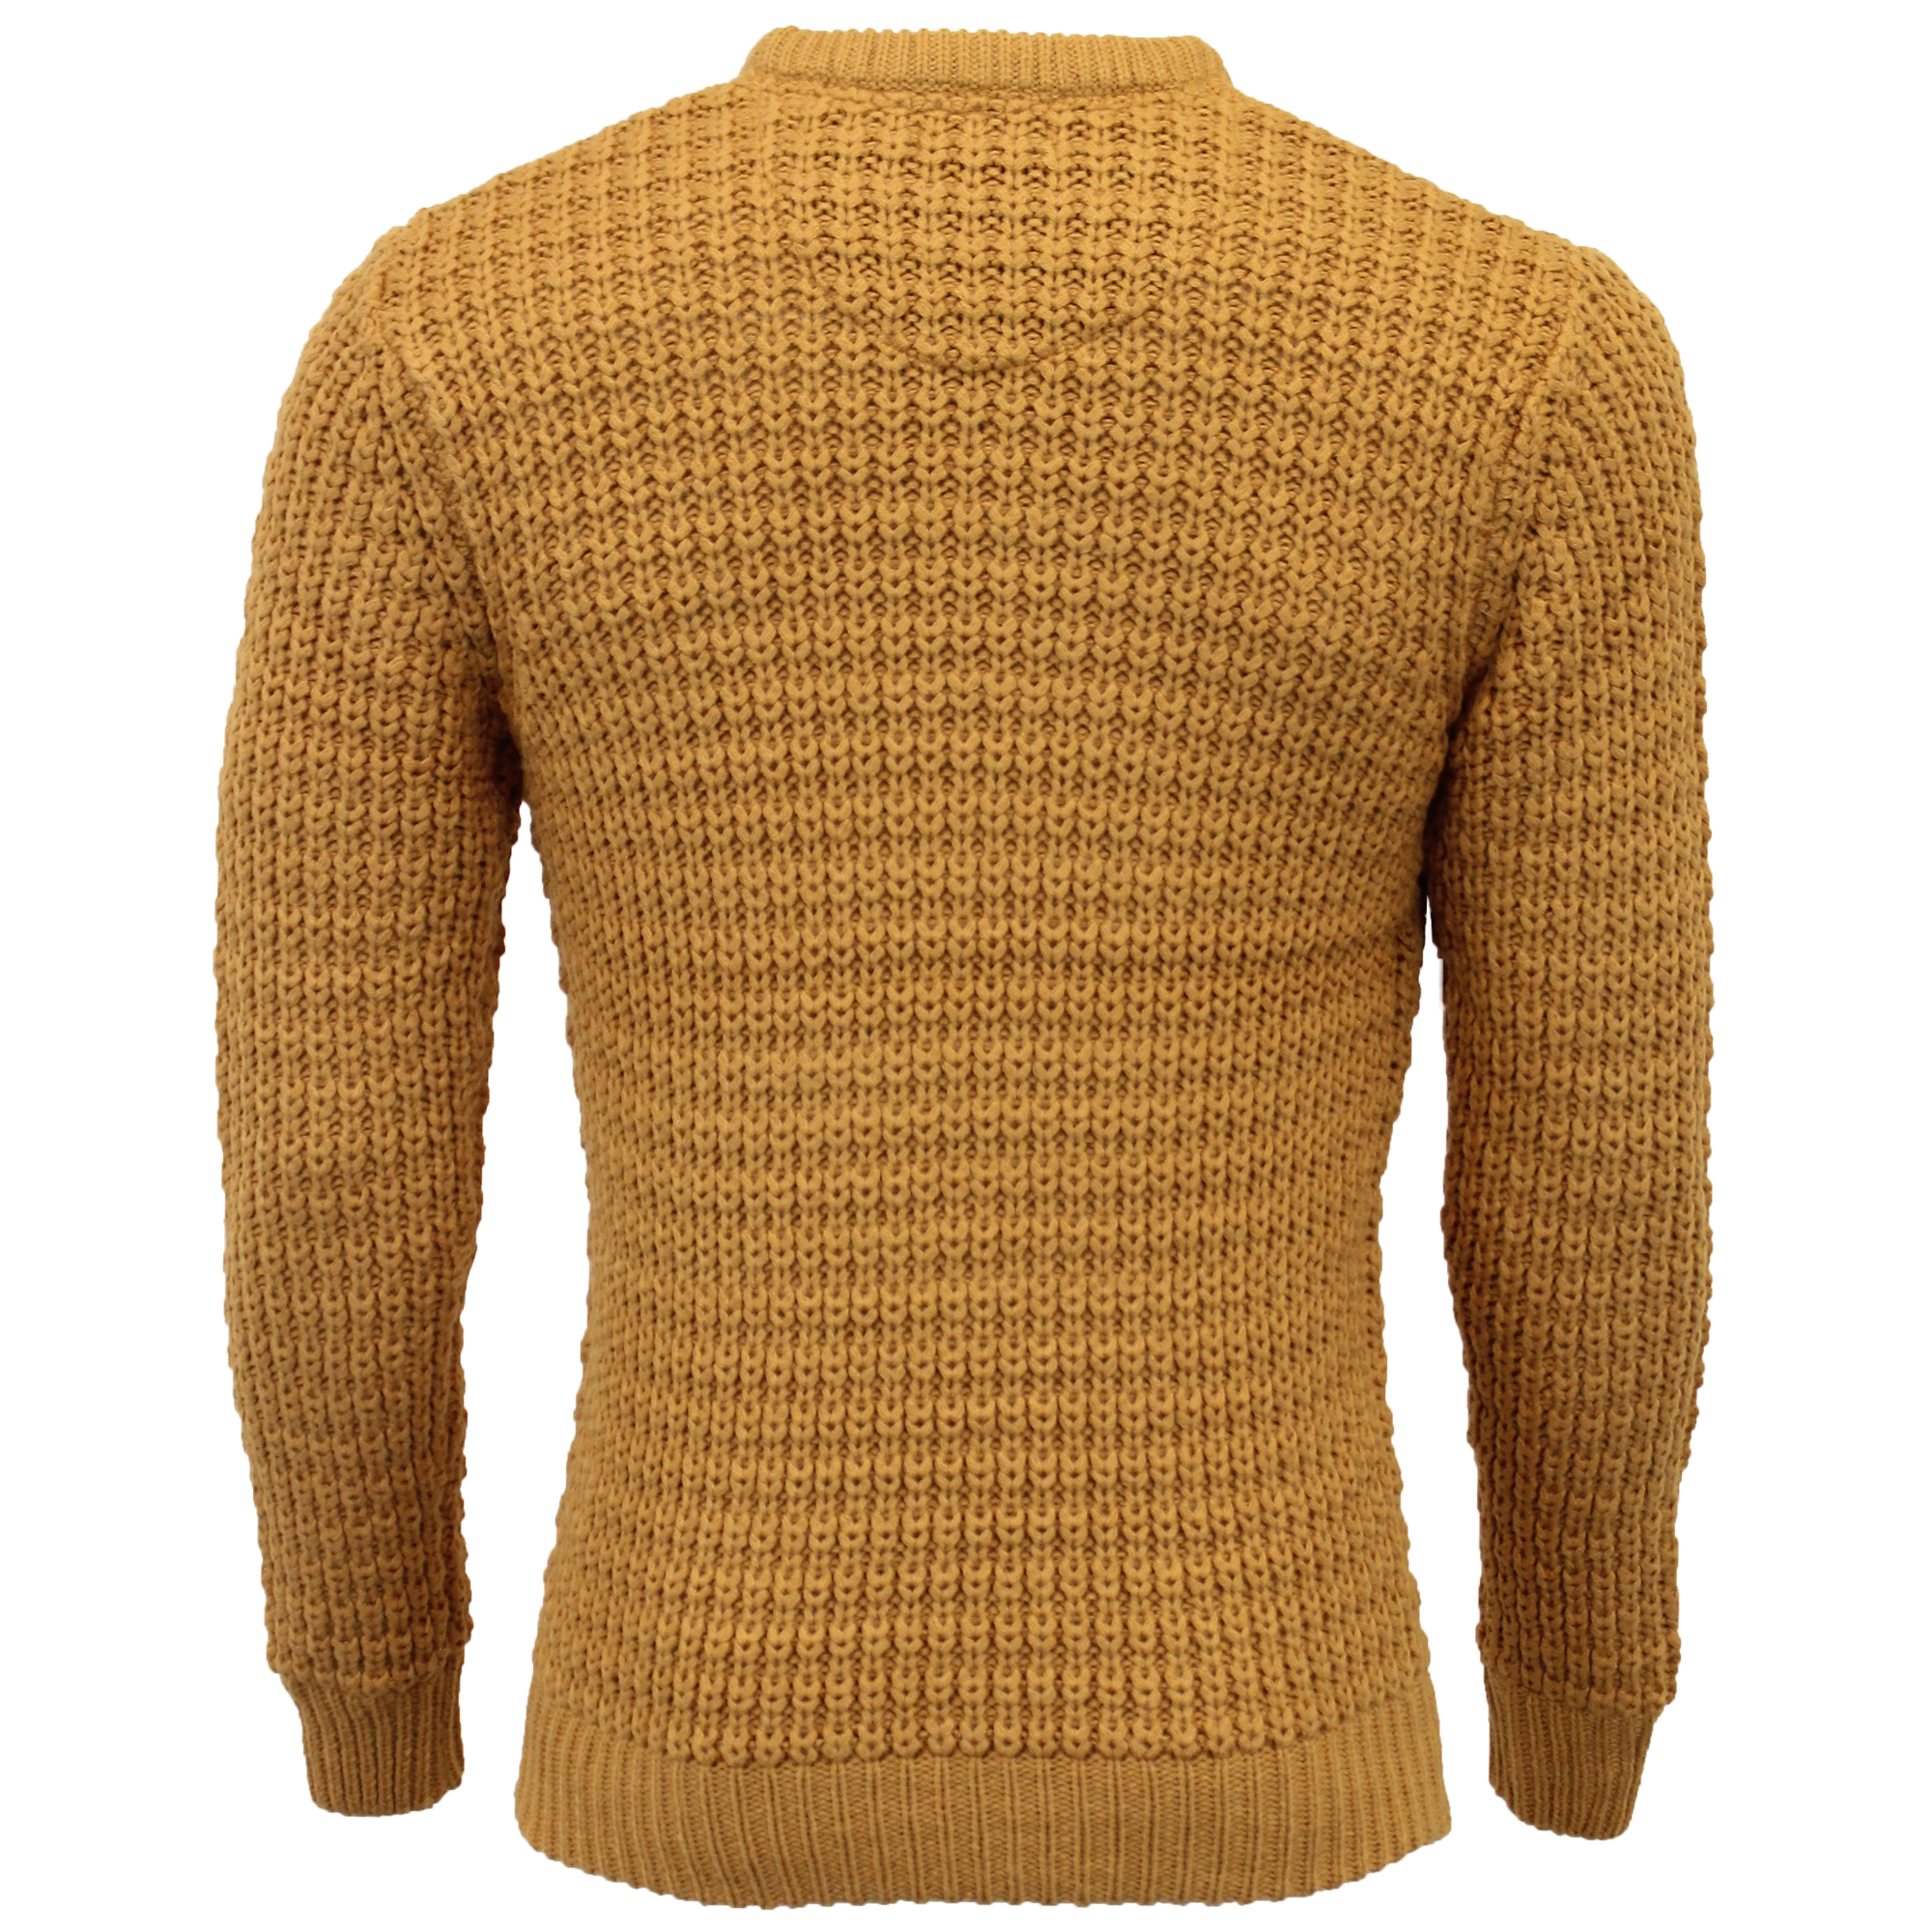 Mens-Cable-Knitted-Jumper-Brave-Soul-DIRAC-Crew-Neck-Pullover-Top-Winter-Fashion thumbnail 12